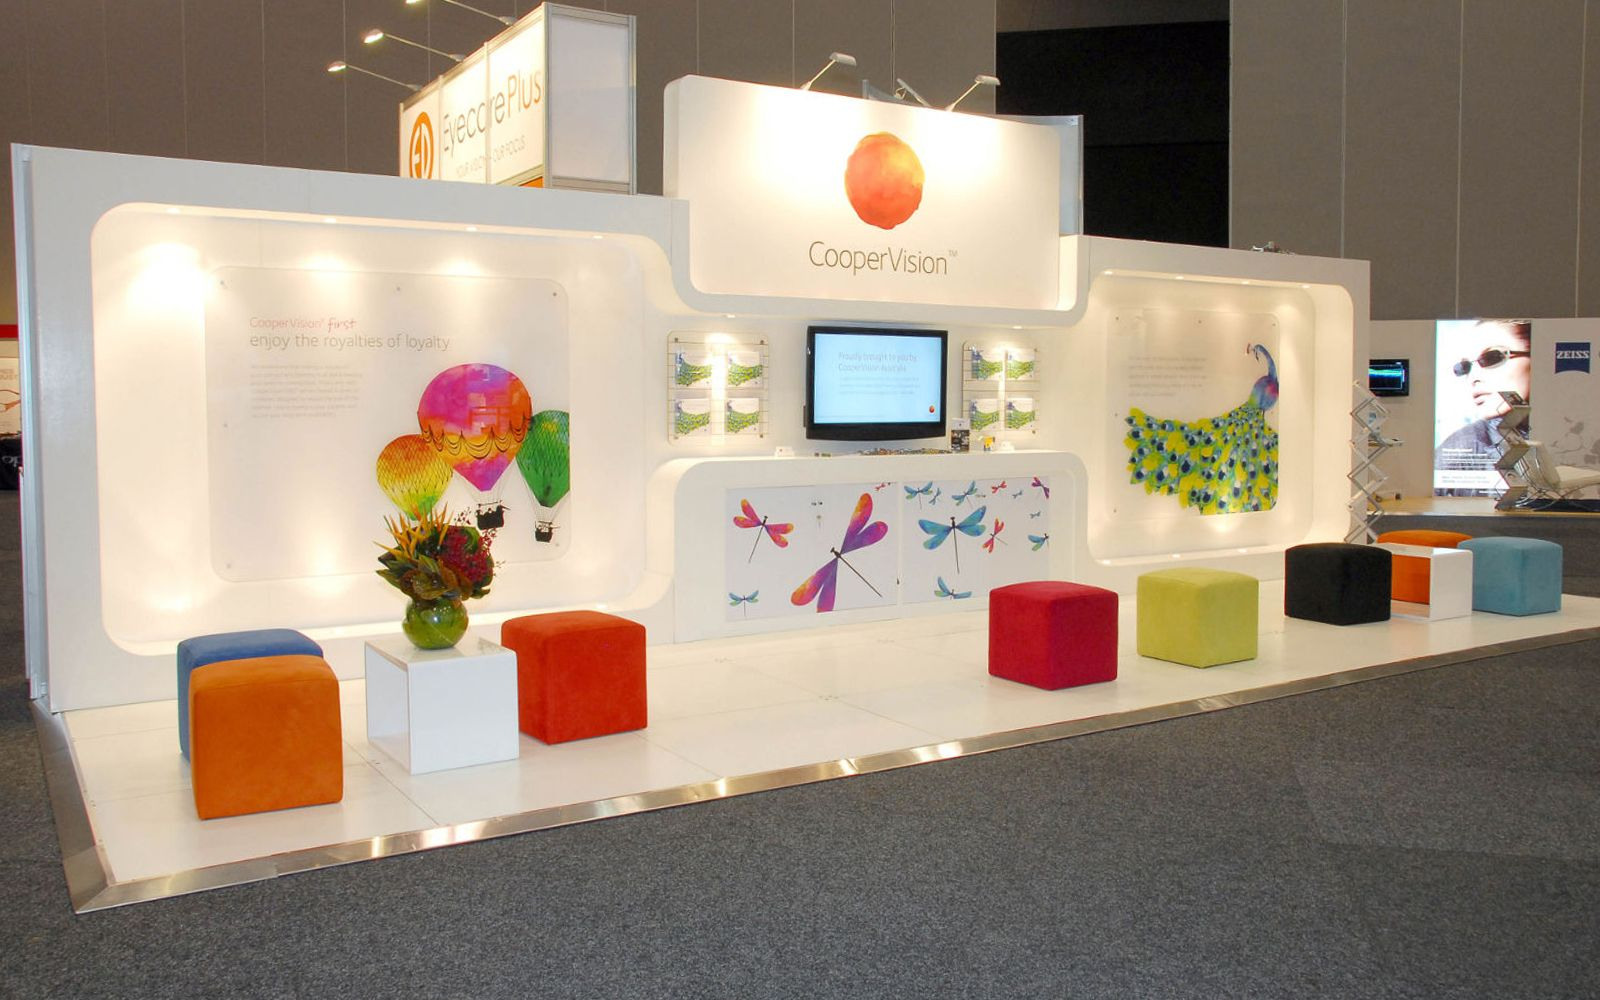 Exhibition Stand Graphic Design : Beautiful graphic design coopervision exhibition